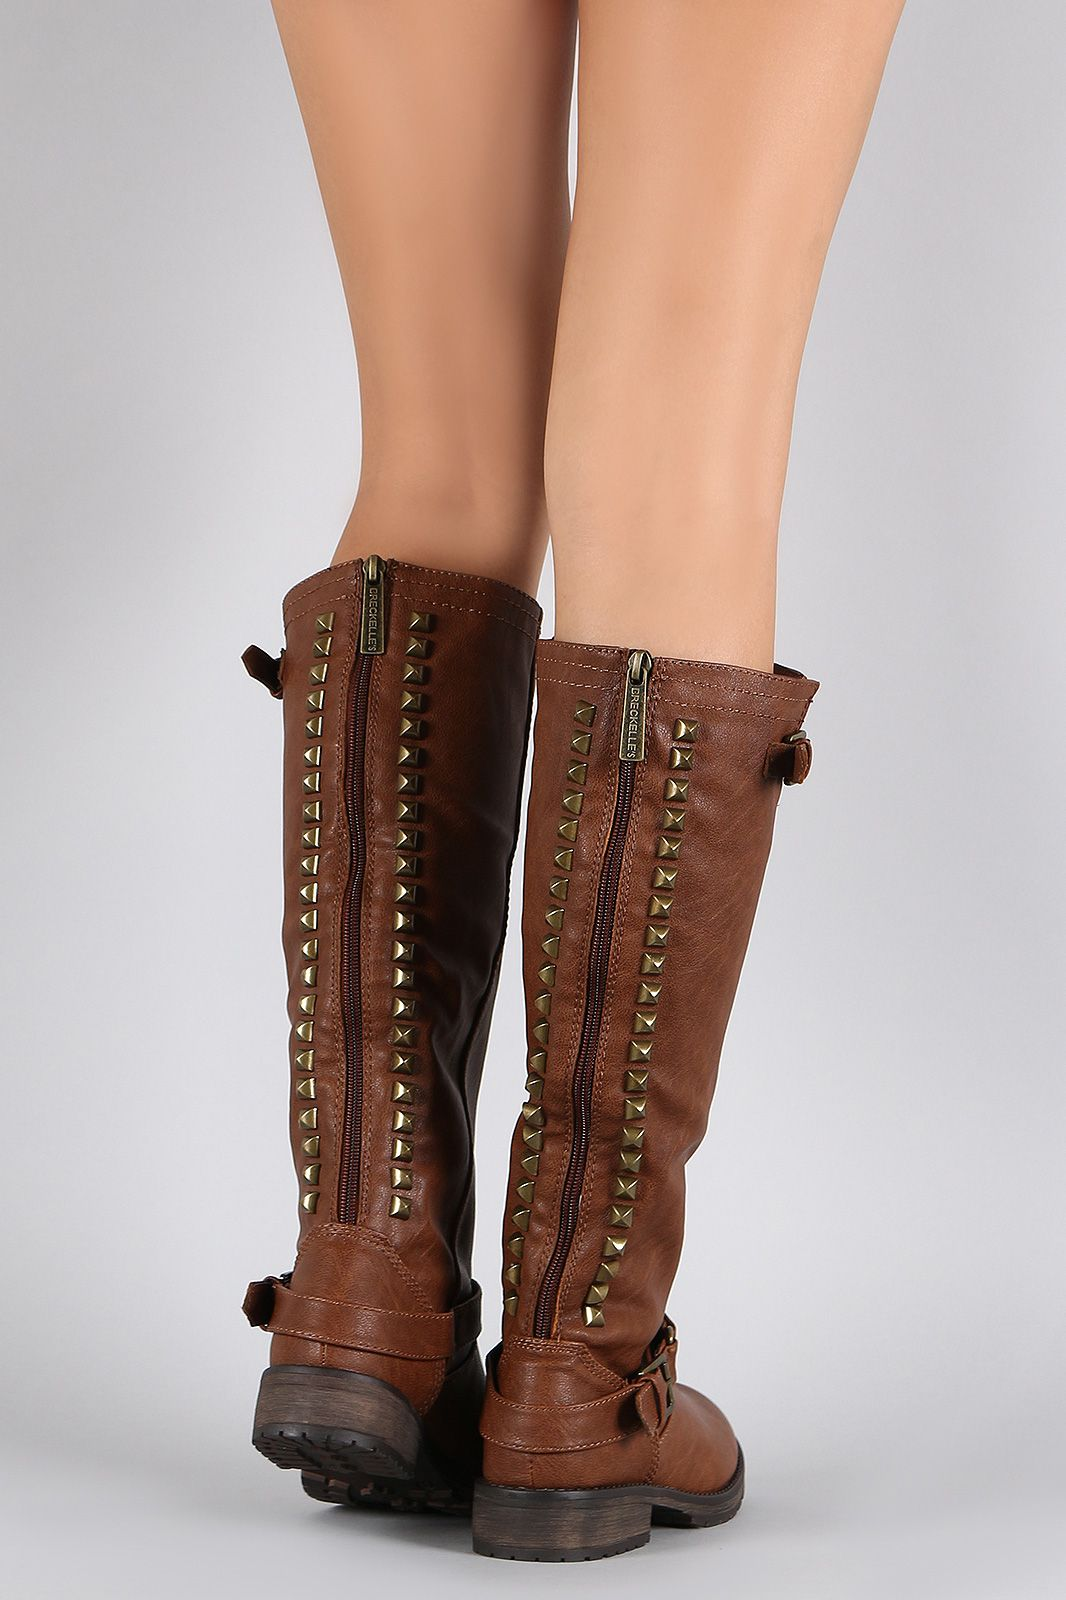 67e1dba089b Studded Buckle Riding Knee High Boot. This knee high boot features a ...